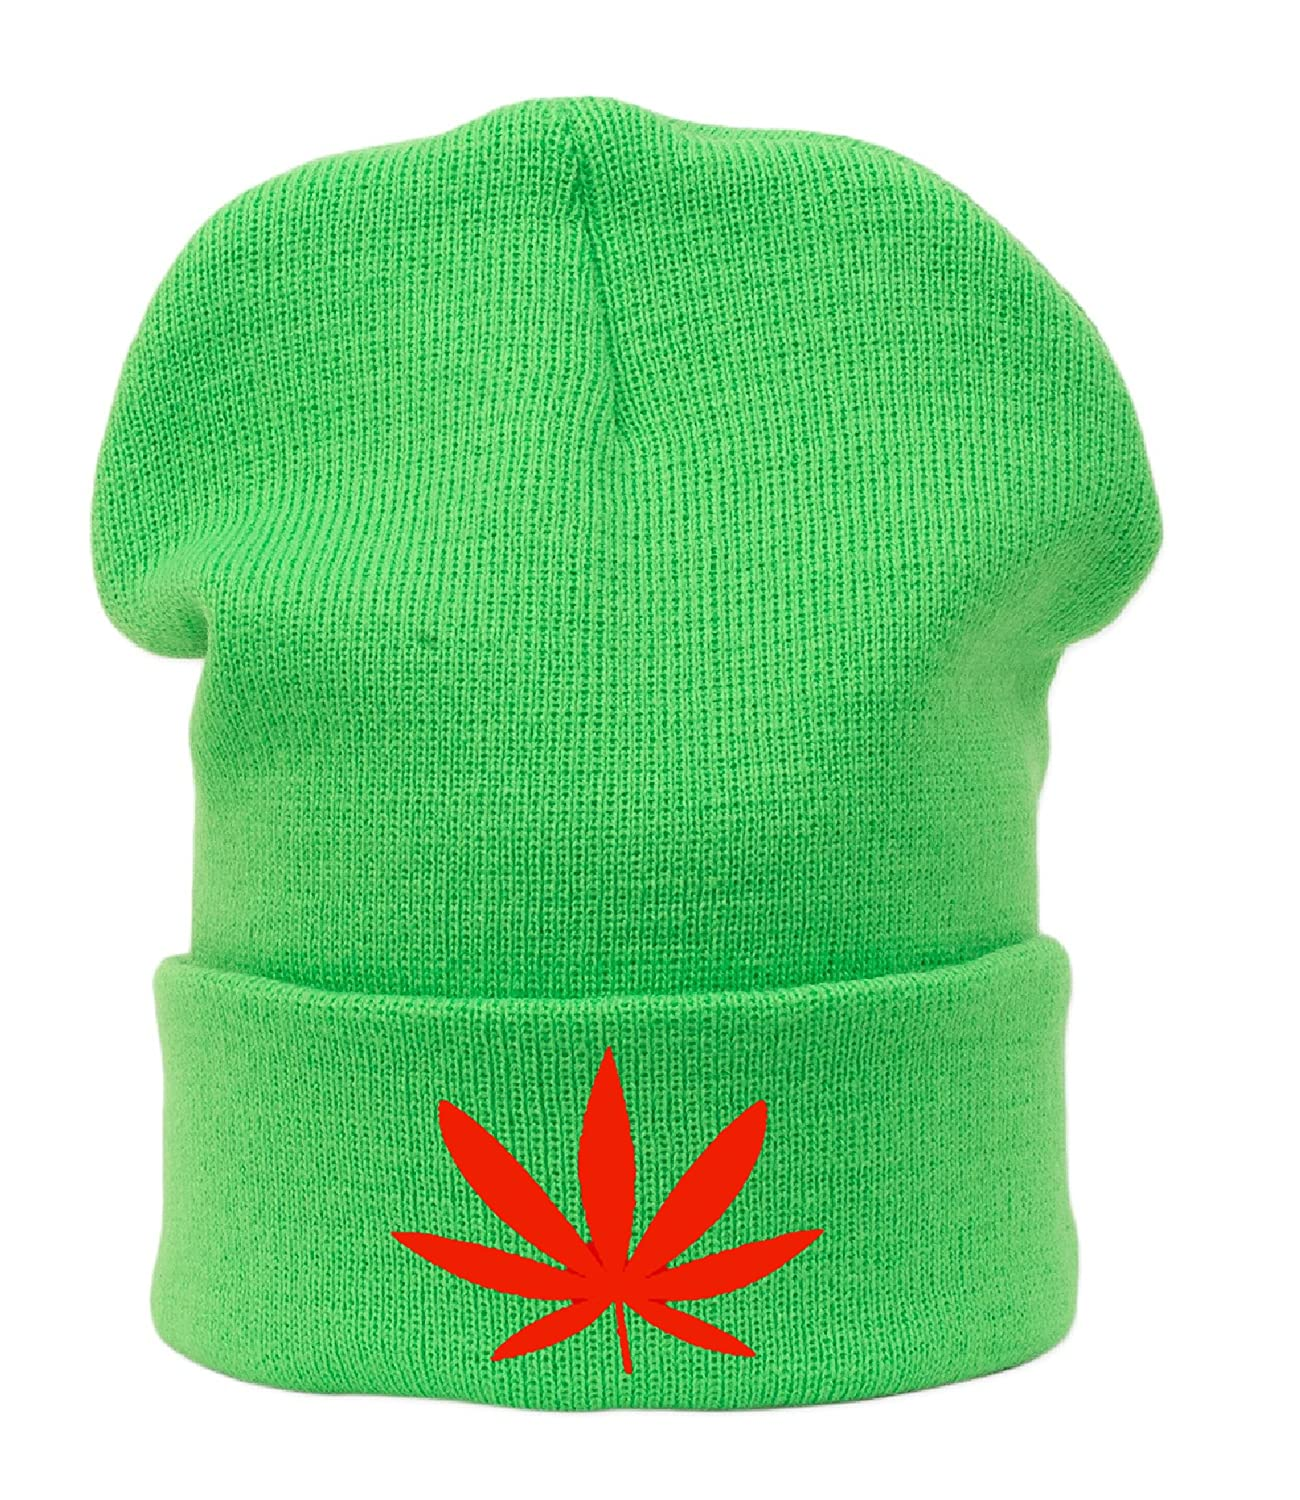 Winter Wool Beanie Mütze hat Herren Damen GANJA 420 WEED Fashion Ski Snowboard Swag Diamond HAT HATS Morefazltd (TM)